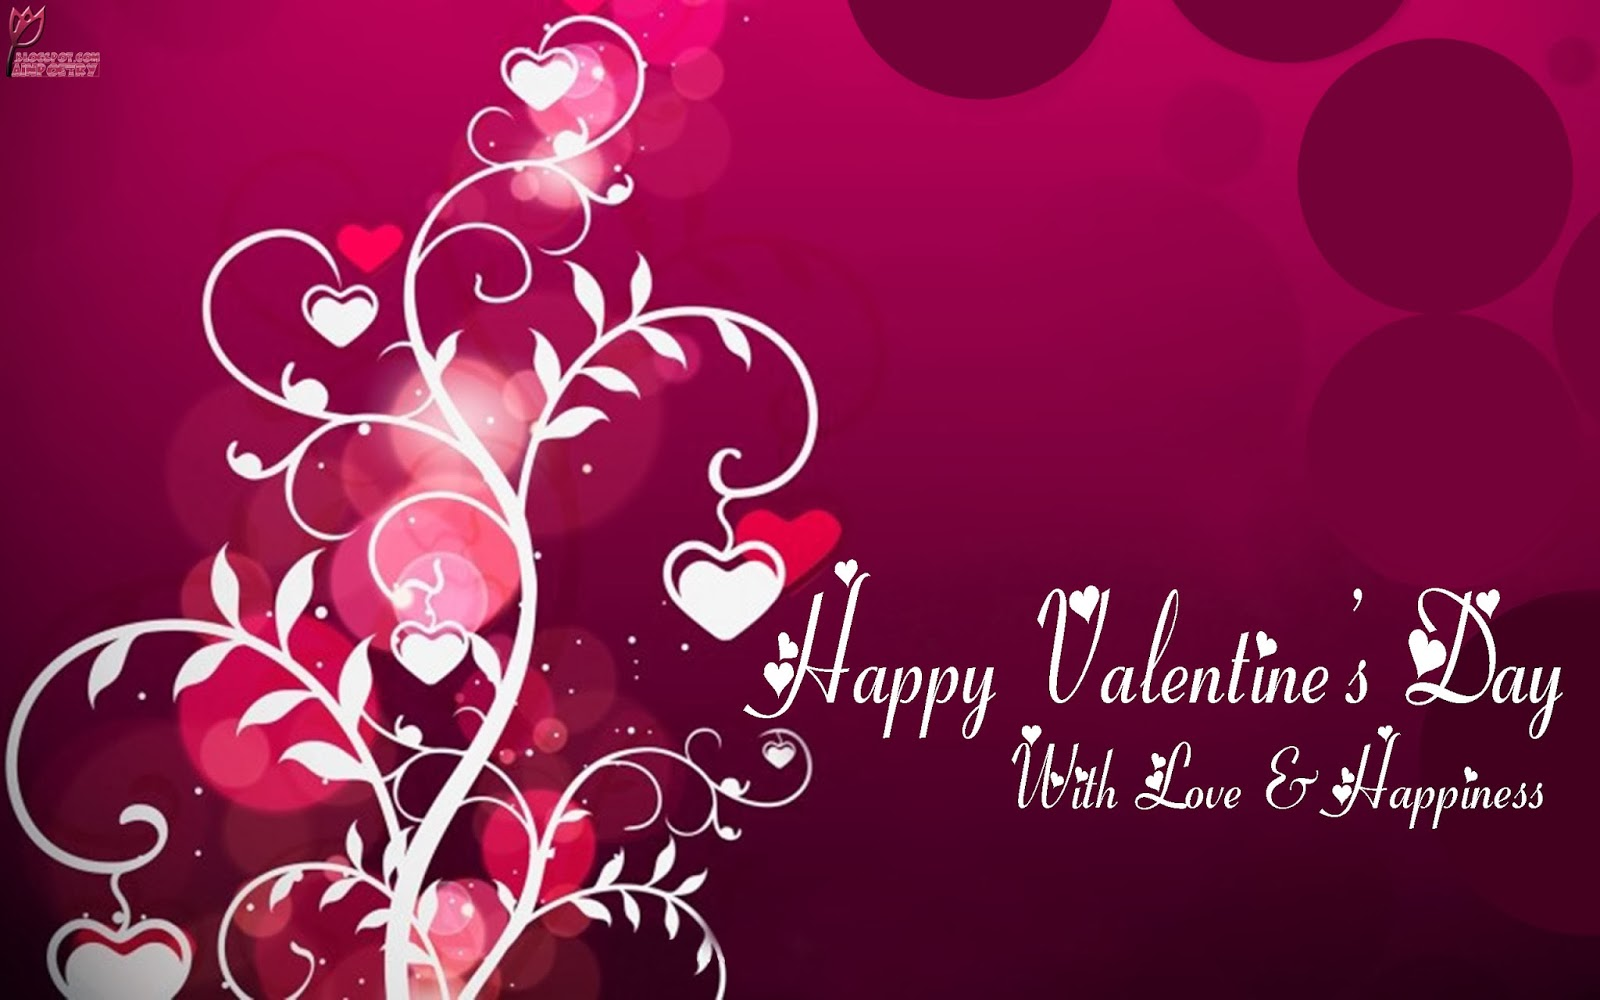 Happy-Valentines-Day-Wishes-Wallpaper-HD